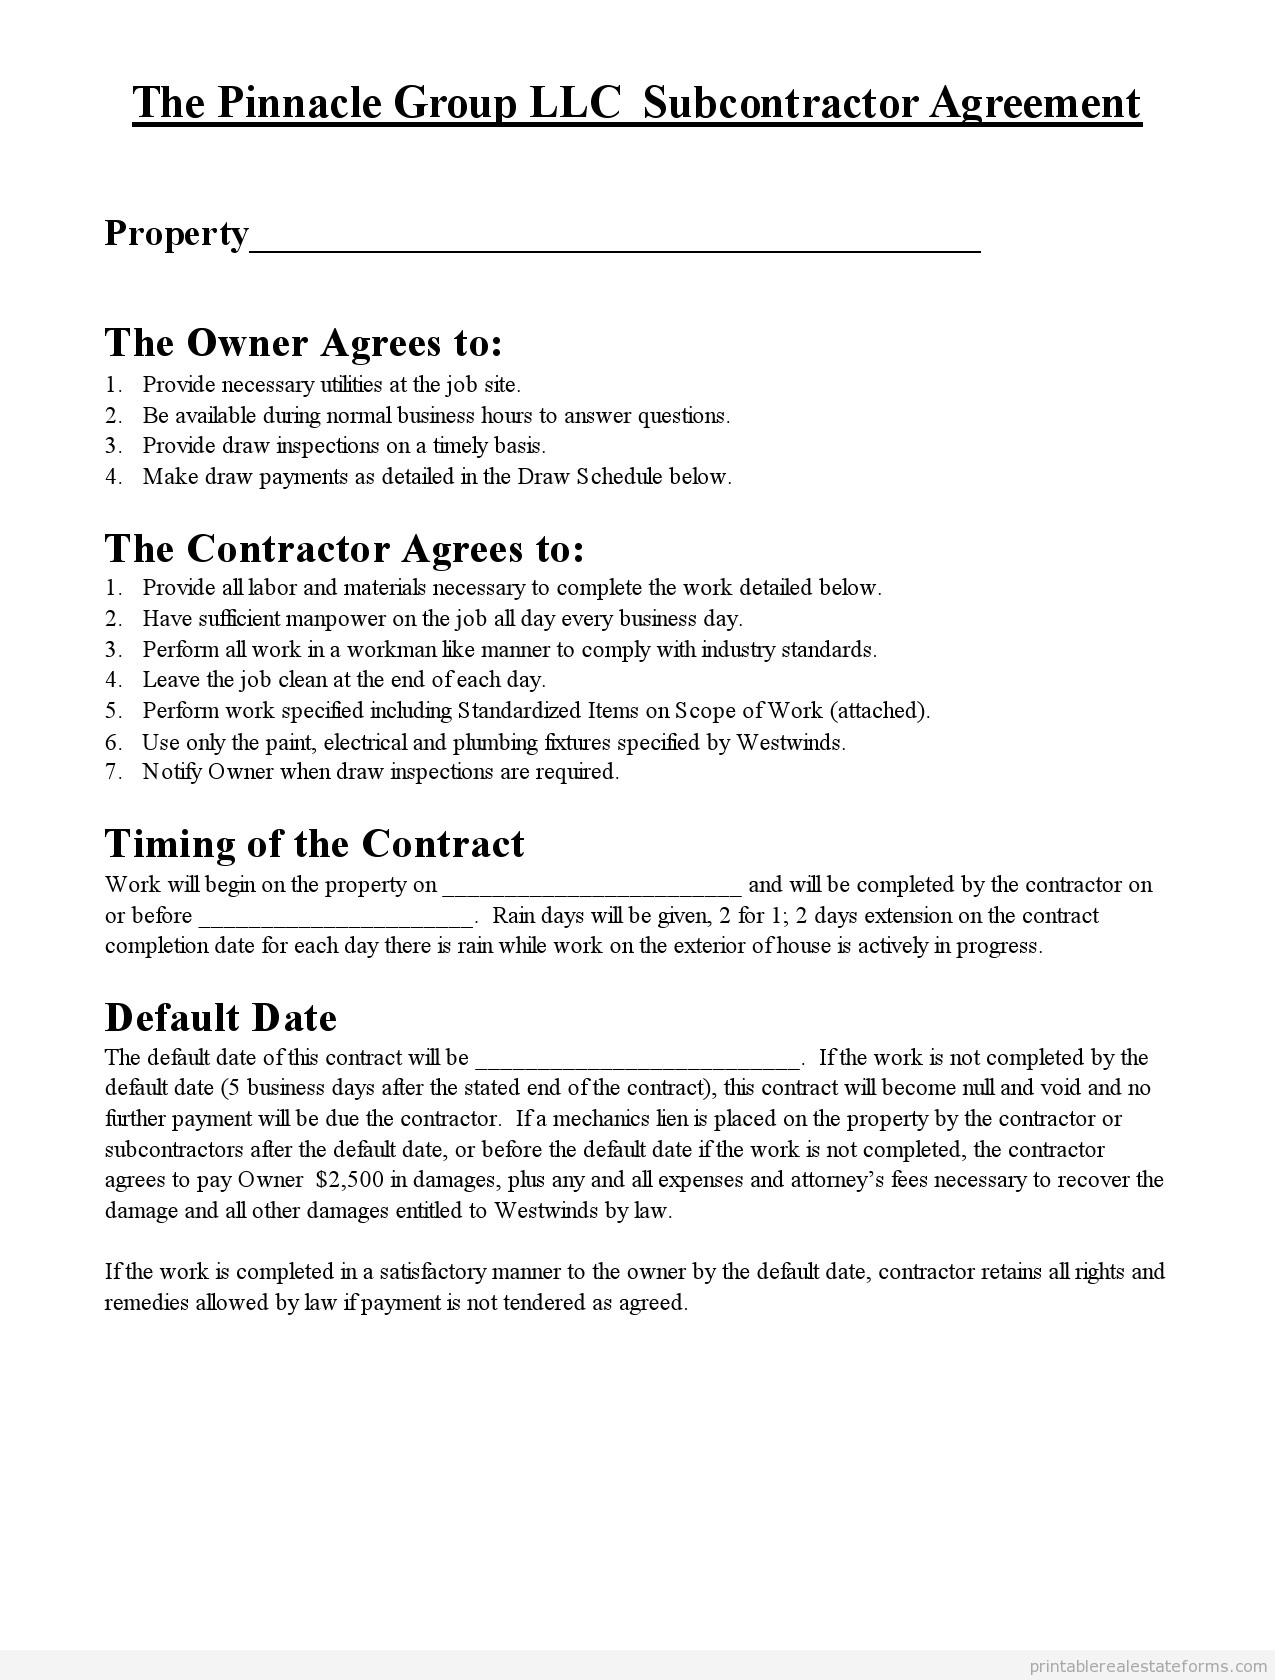 Subcontractor Agreement Template Free Free Printable Subcontractor Agreement form